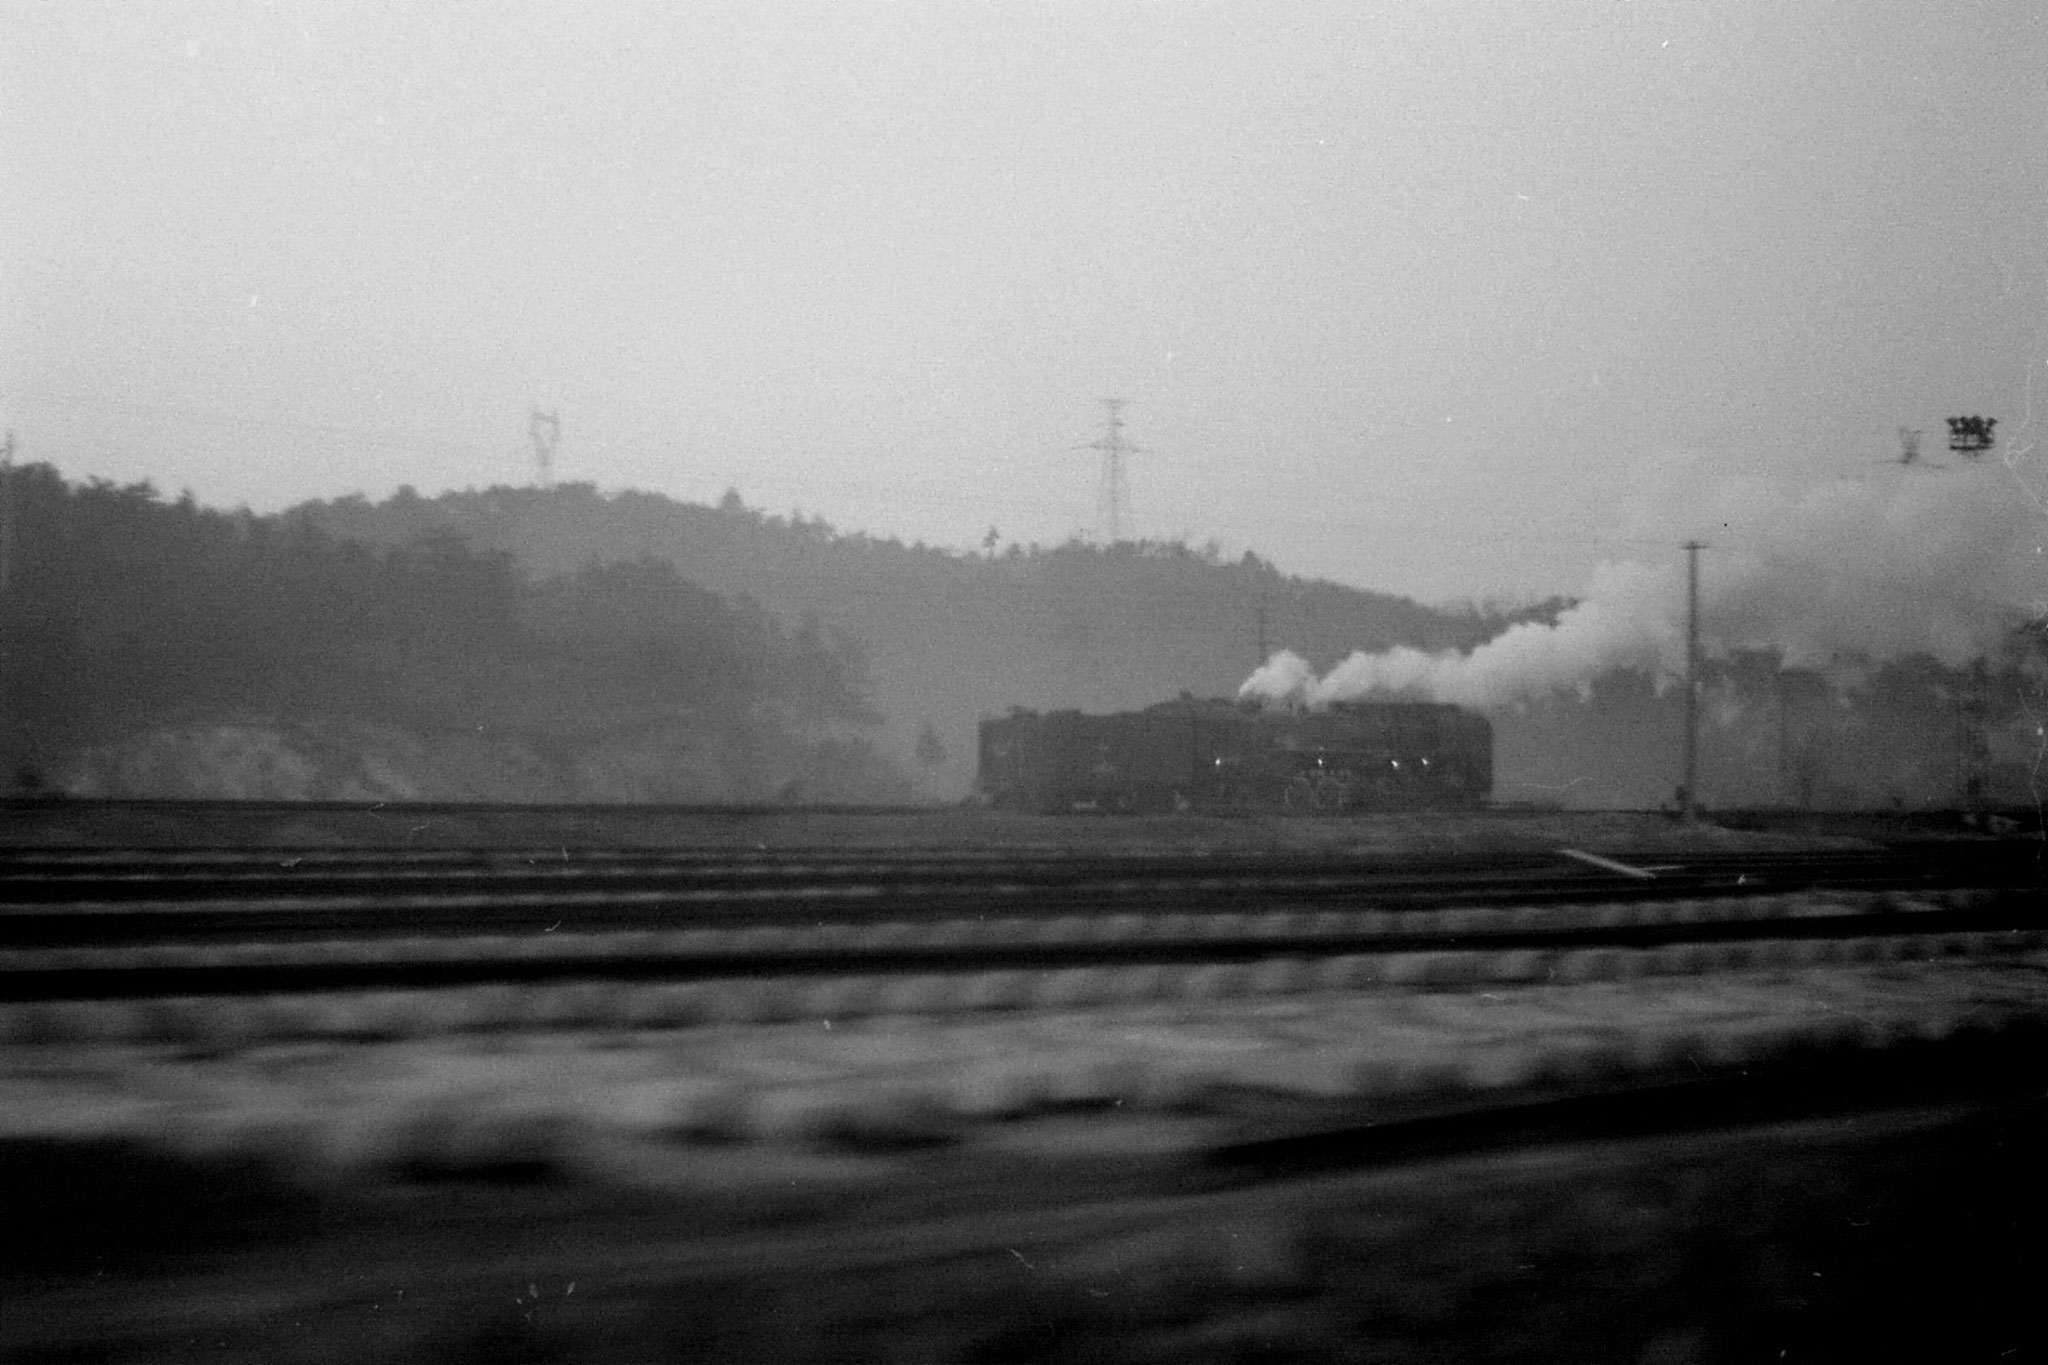 13/12/1988: 29: train from Nanjing to Shanghai